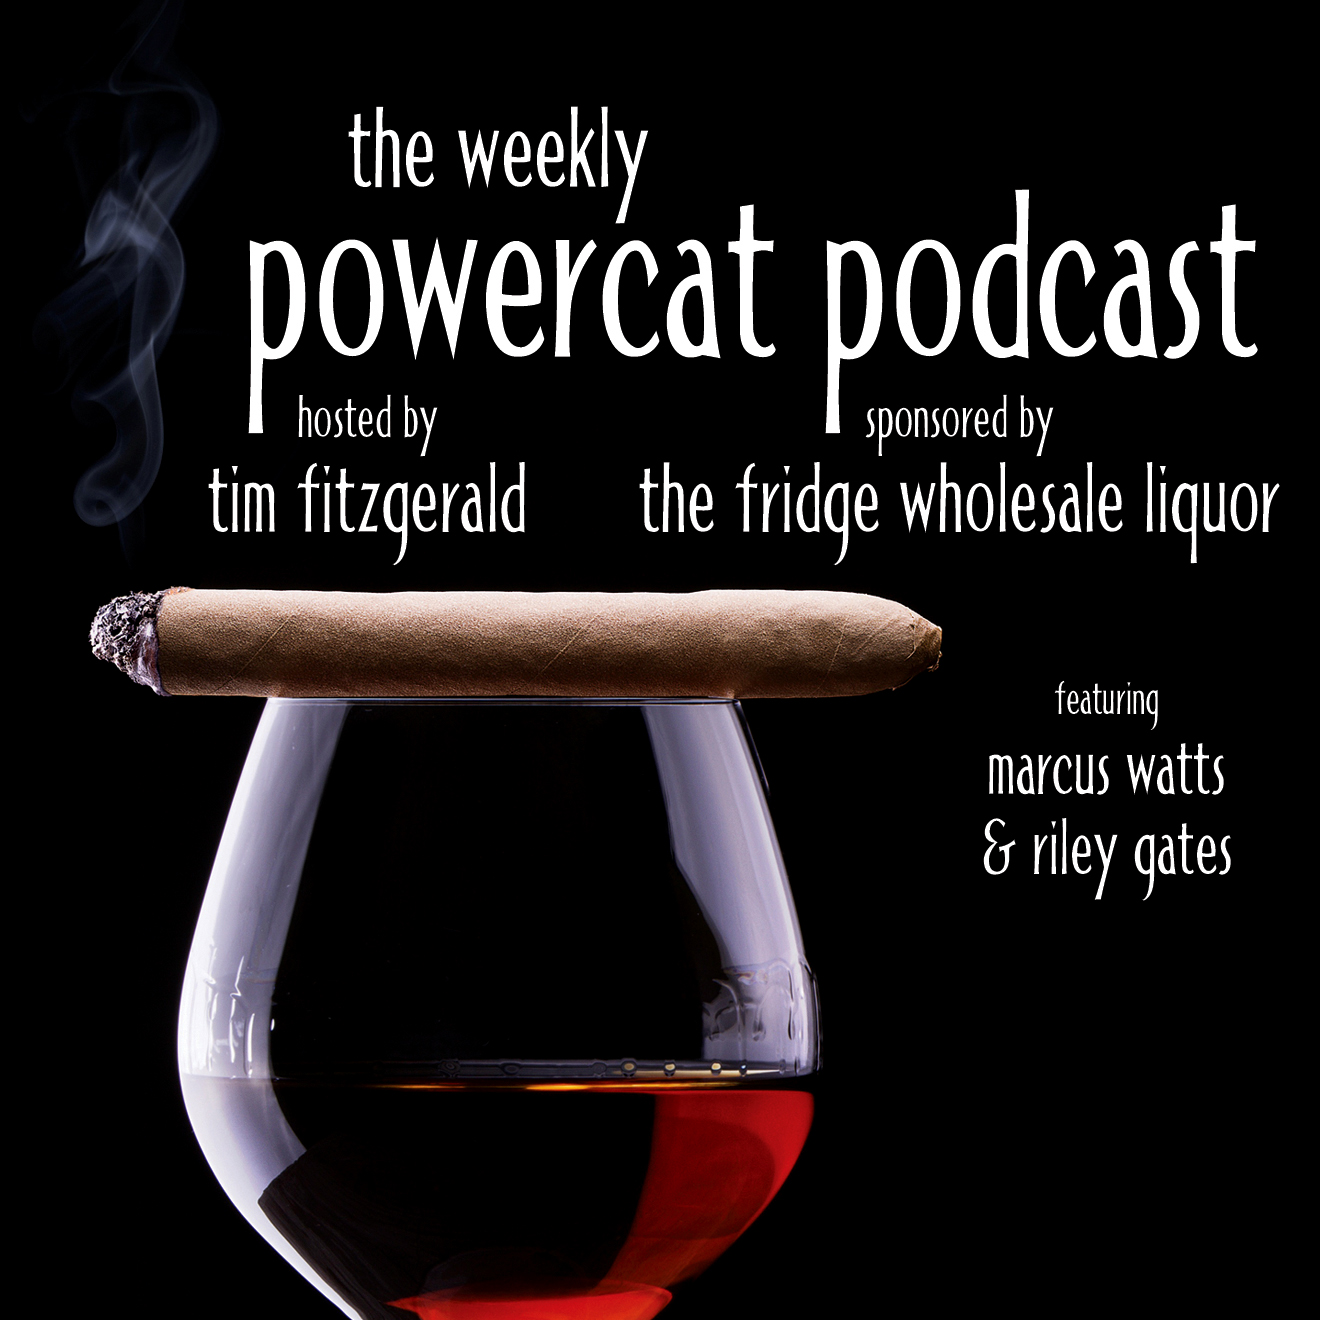 The Powercat Podcast 11.16.16